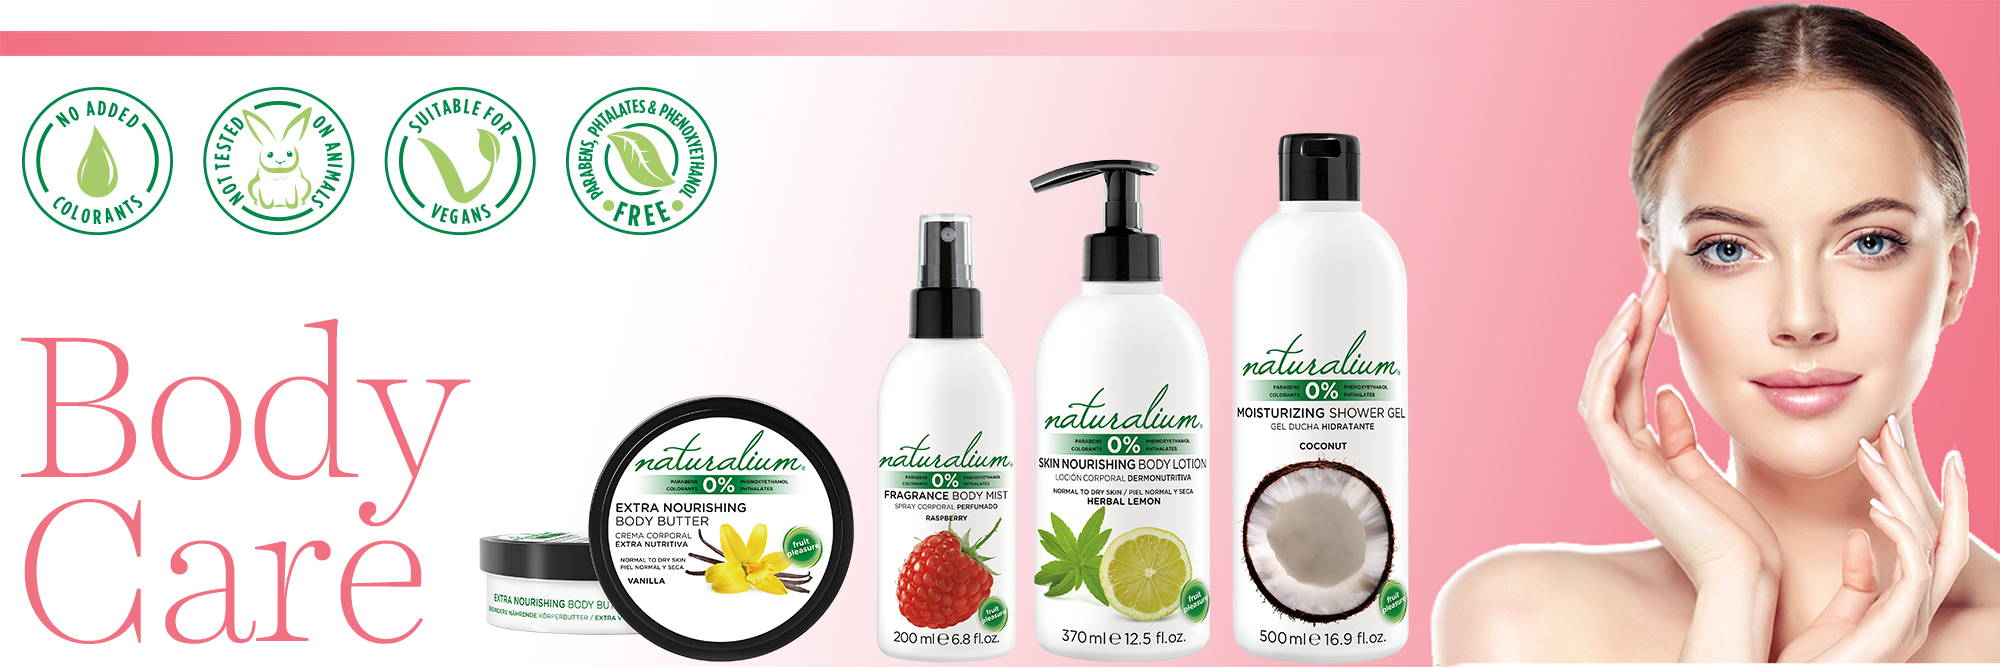 Body Care Naturalium